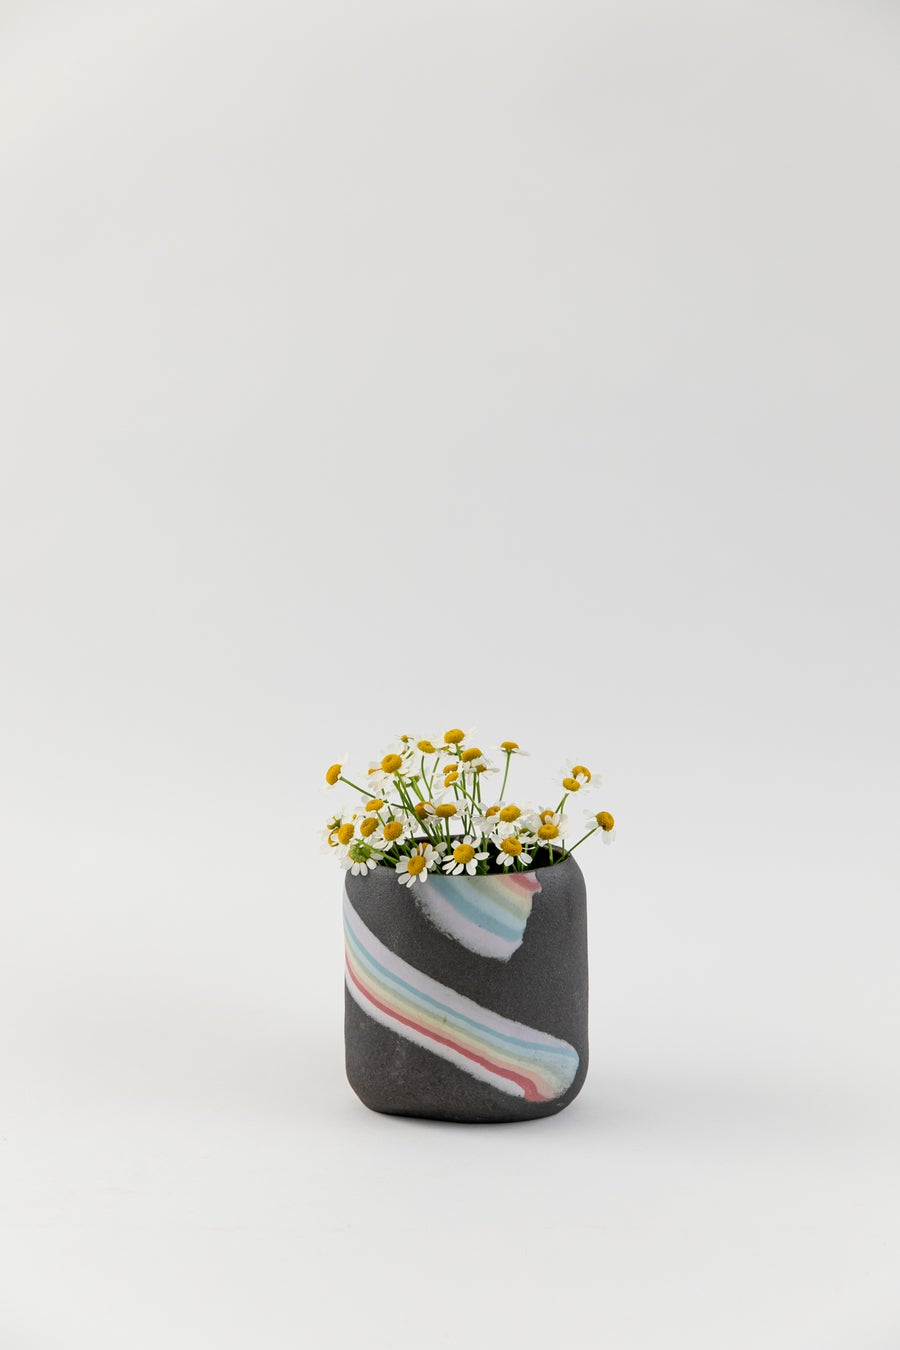 Image of Short Oval Inlay Vase - Rainbow on Dark Sky